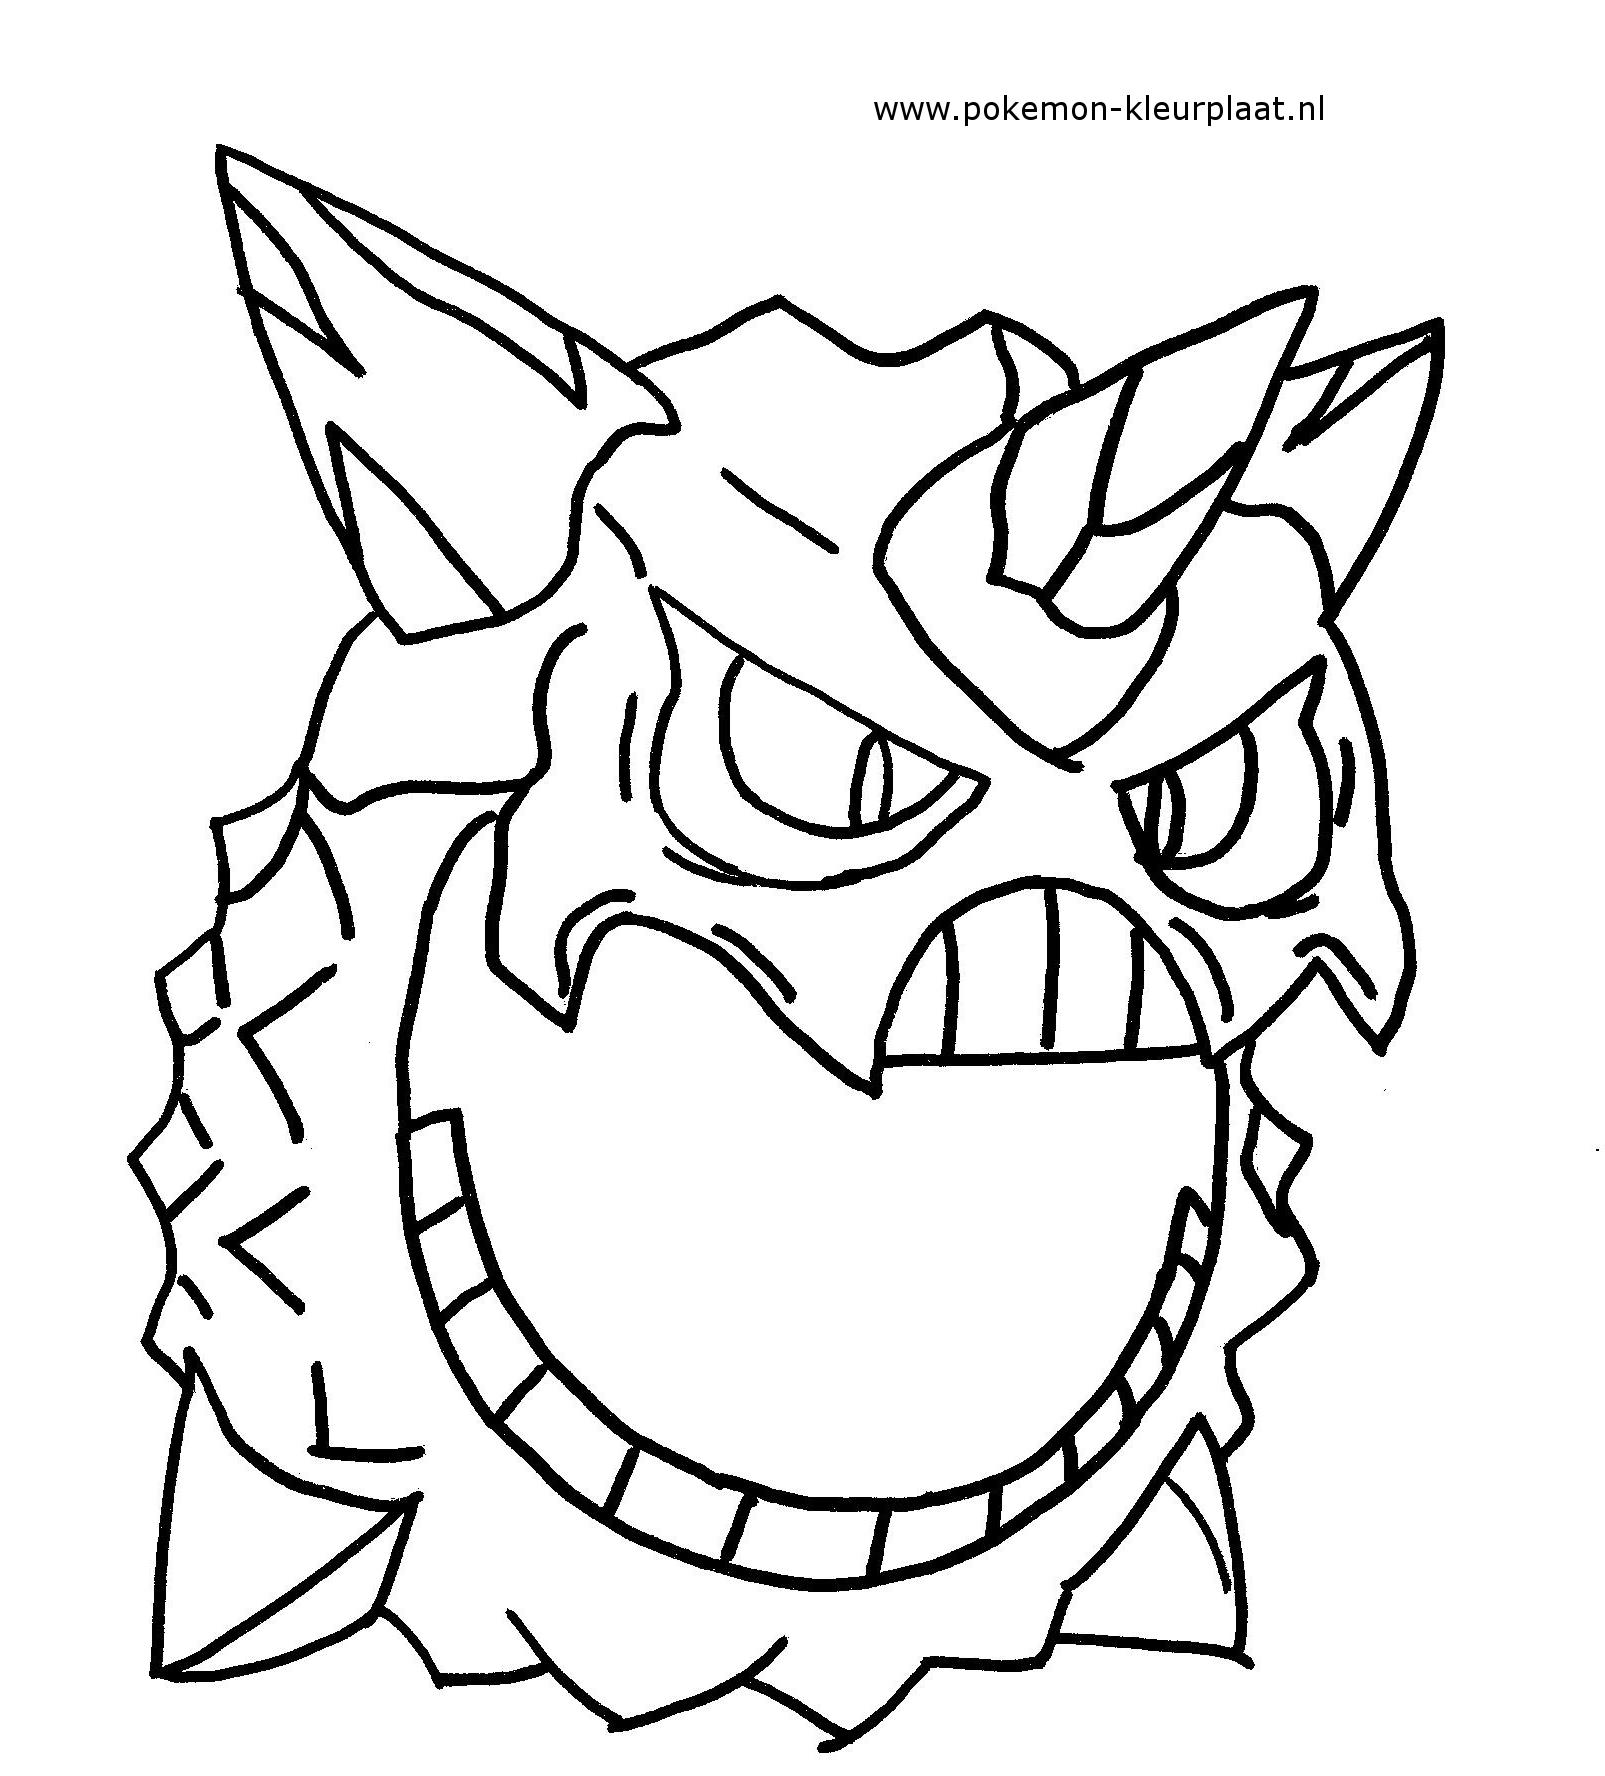 It is a graphic of Trust mega pokemon coloring pages